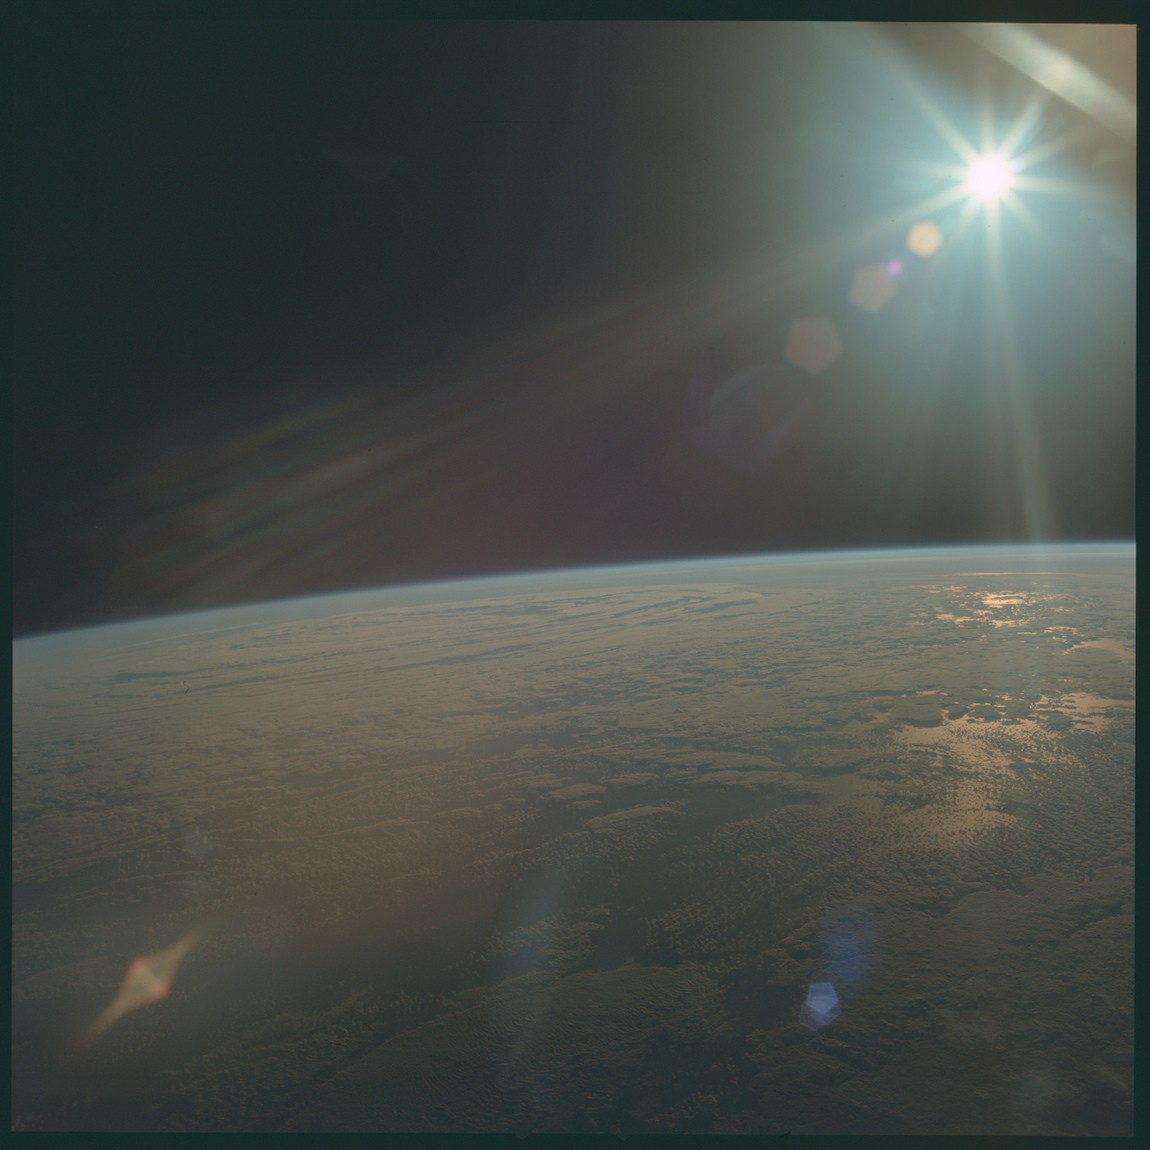 General 1150x1150 Sun Earth atmosphere space